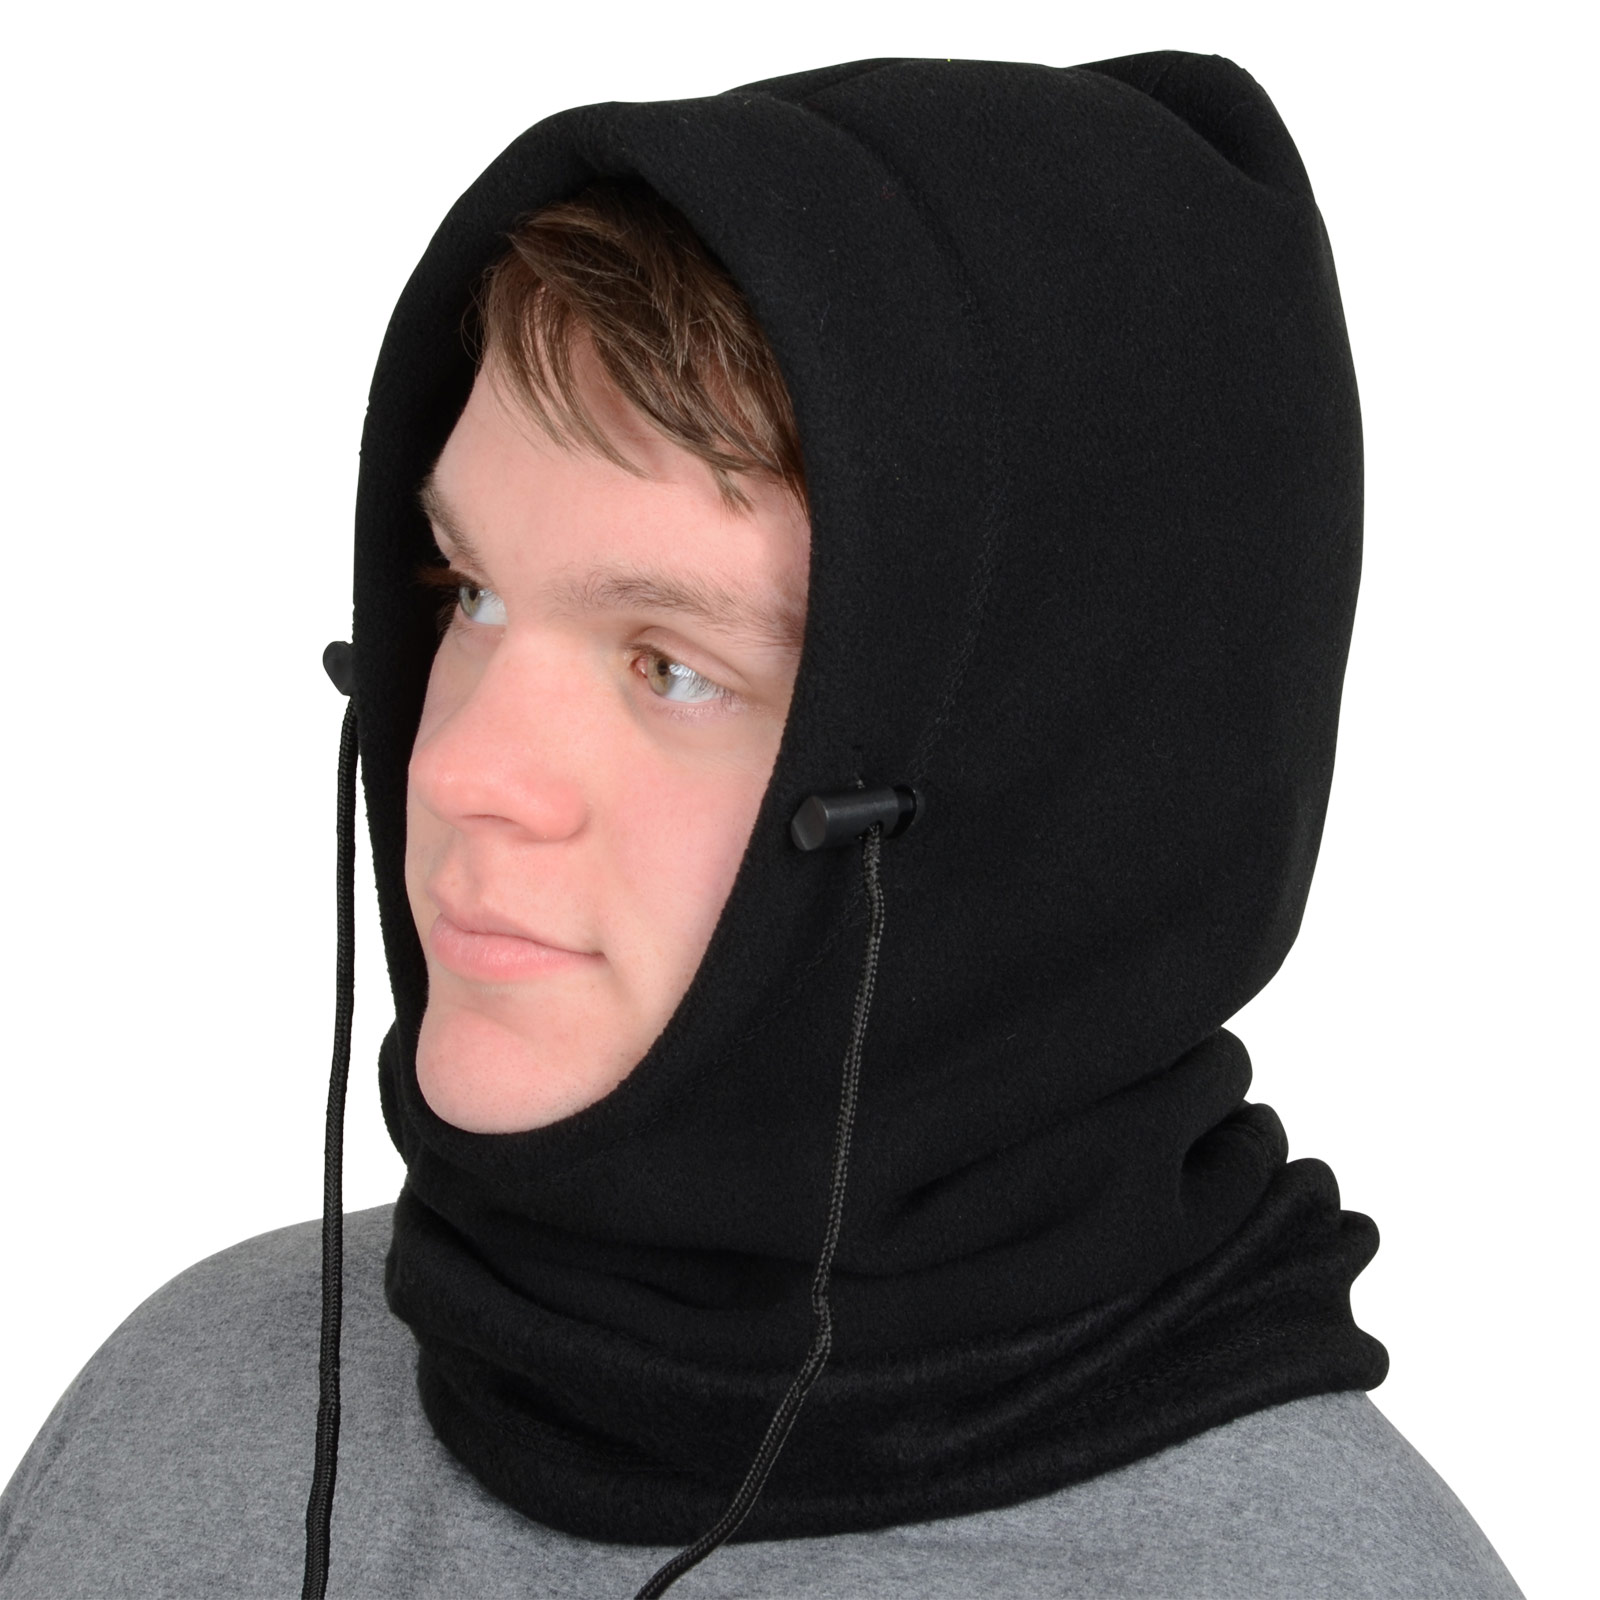 Full face mask neck warmer hood balaclava outdoor winter sports hats - Picture 2 Of 5